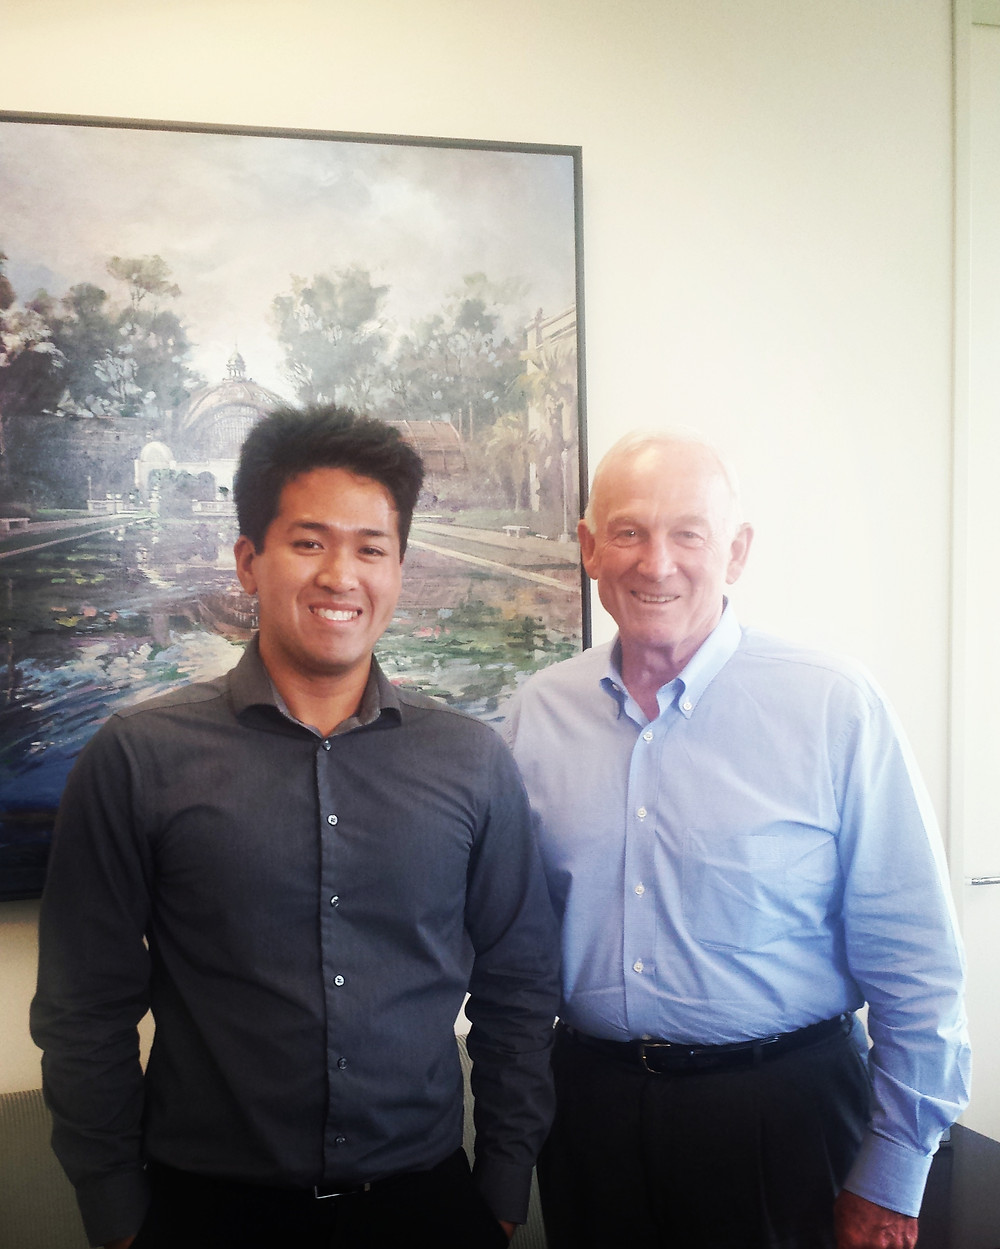 Here is Josh with former mayor, Jerry Sanders!